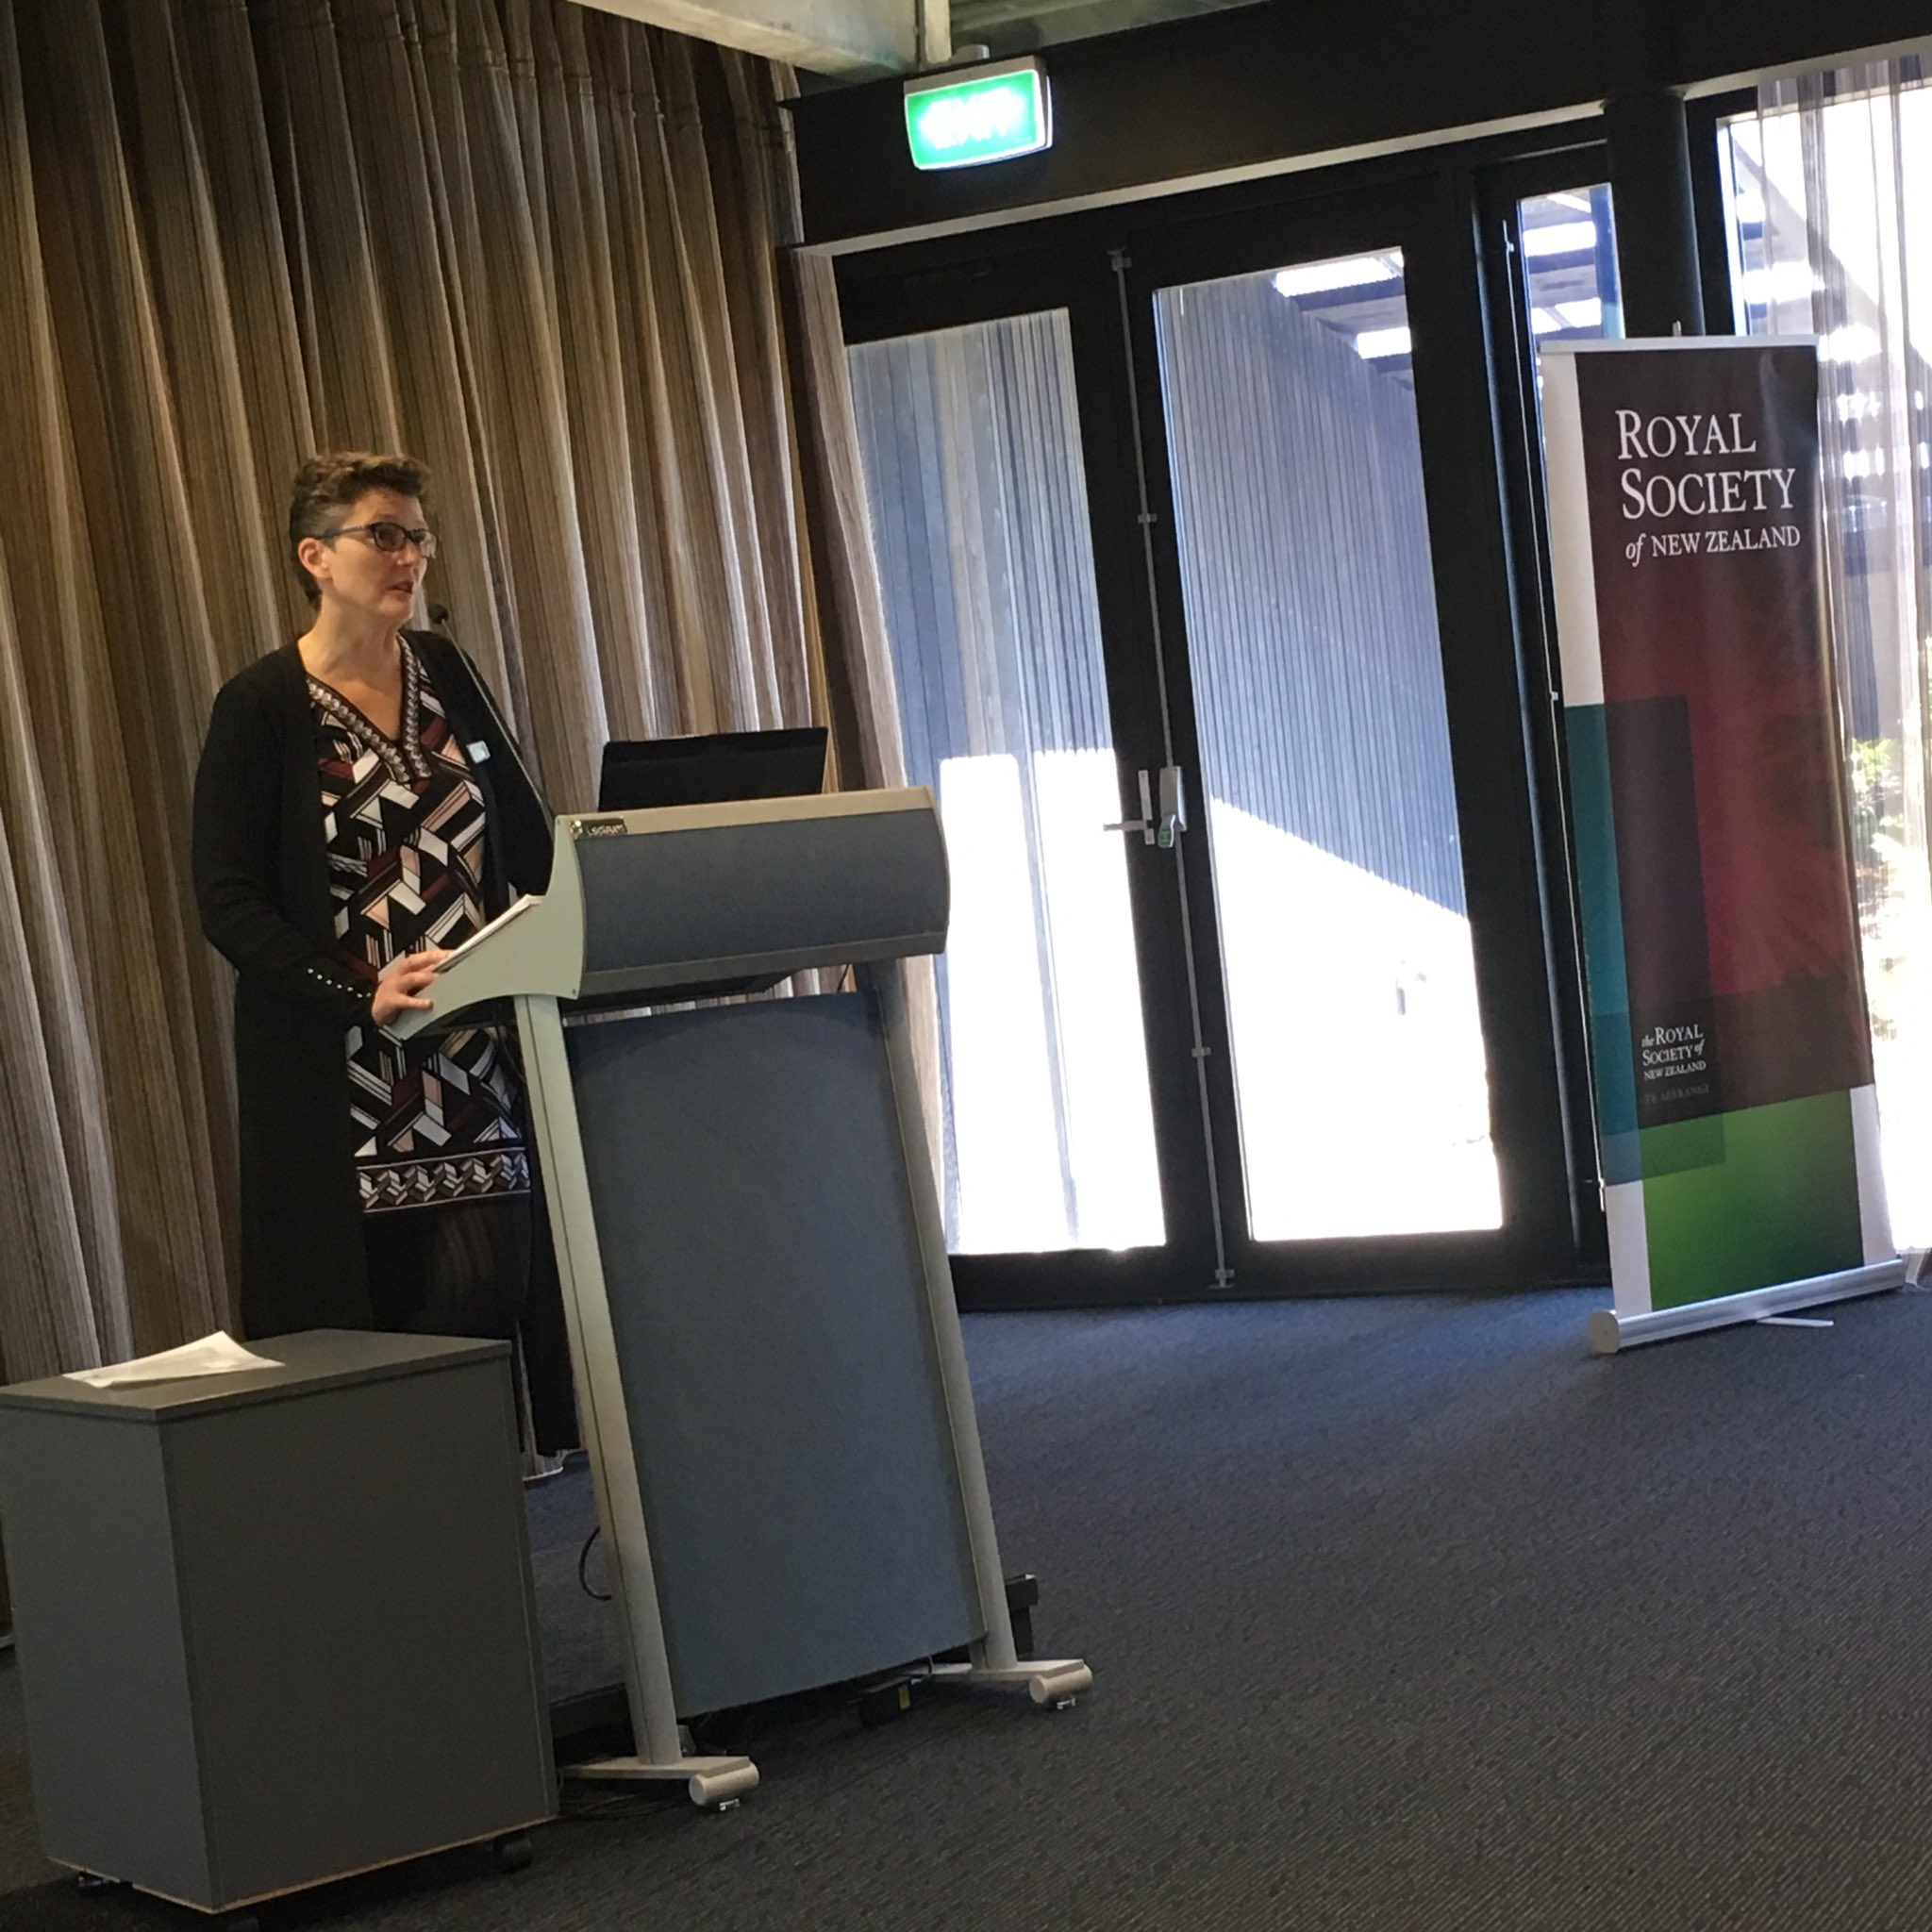 "Executive Director Laure @HaakYak ""NZ consortium is the most diverse among all @ORCID_Org consortia"" #ORCID_NZlaunch https://t.co/Gx5pq2dG1M"